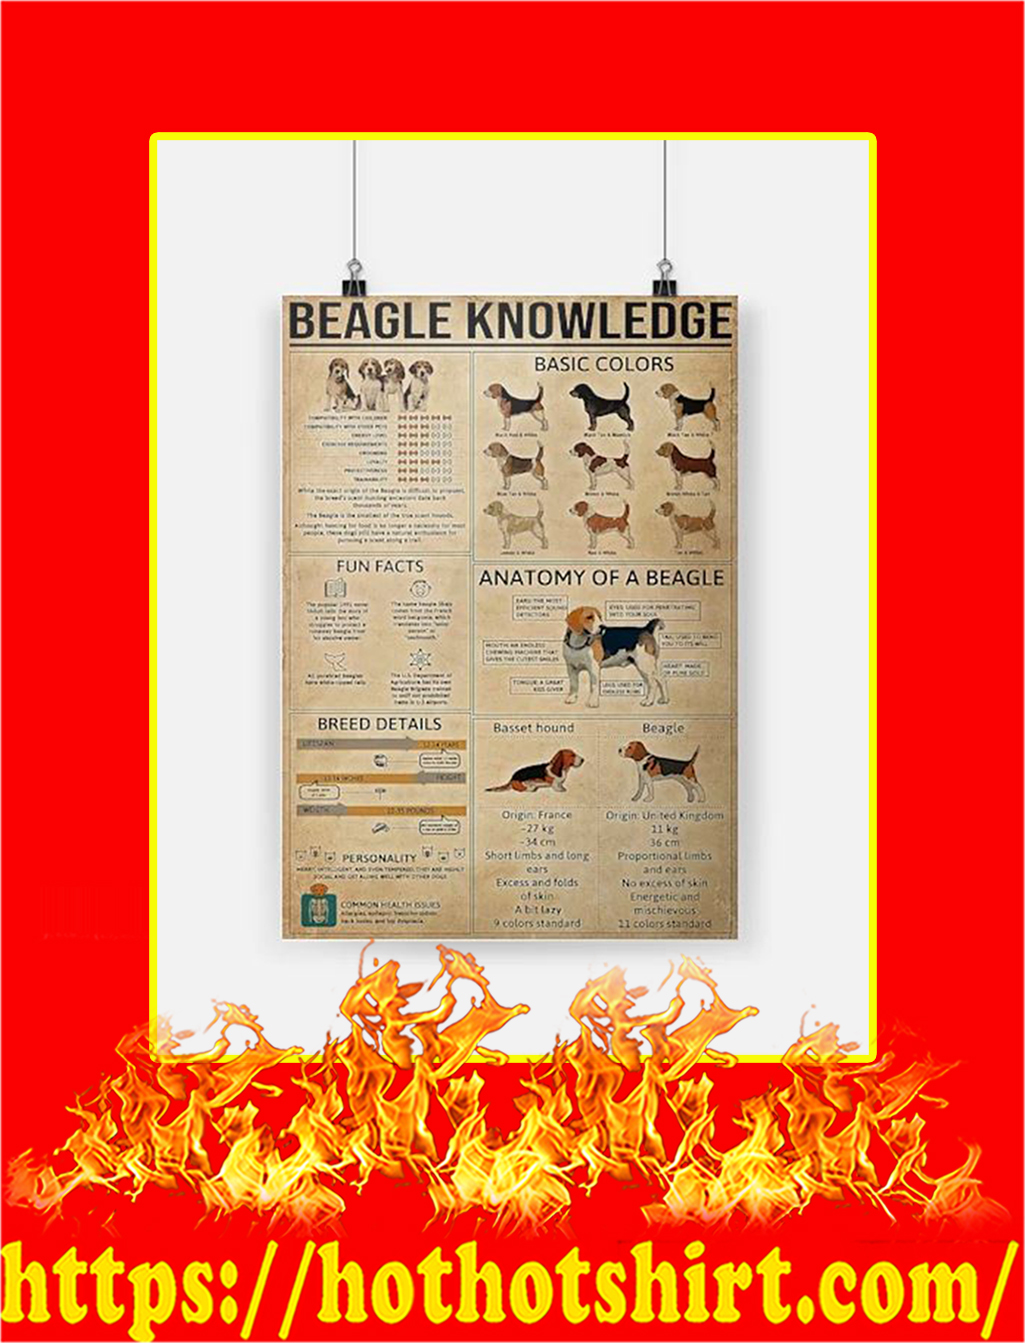 Beagle knowledge Poster - A3